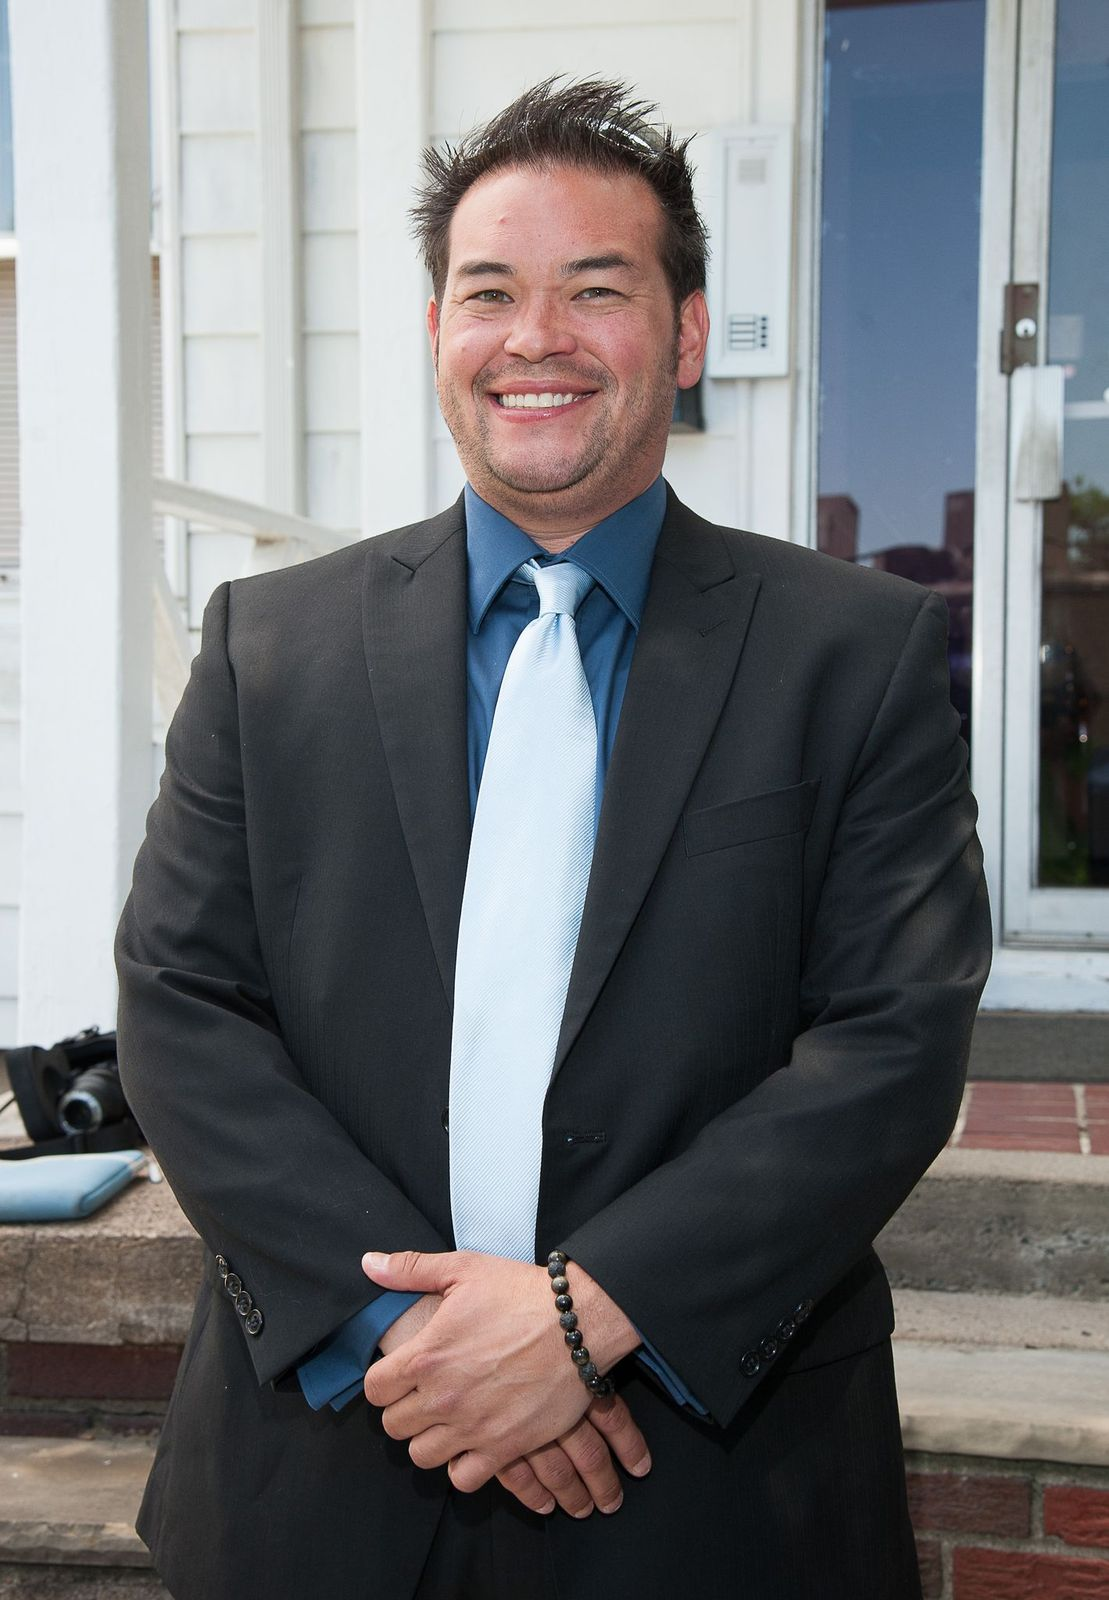 Jon Gosselin at a press conference on Tax Deductible Marriage Counseling at Bergen Marriage Counseling & Psychotherapy on June 27, 2012, in Teaneck, New Jersey | Photo: Dave Kotinsky/Getty Images